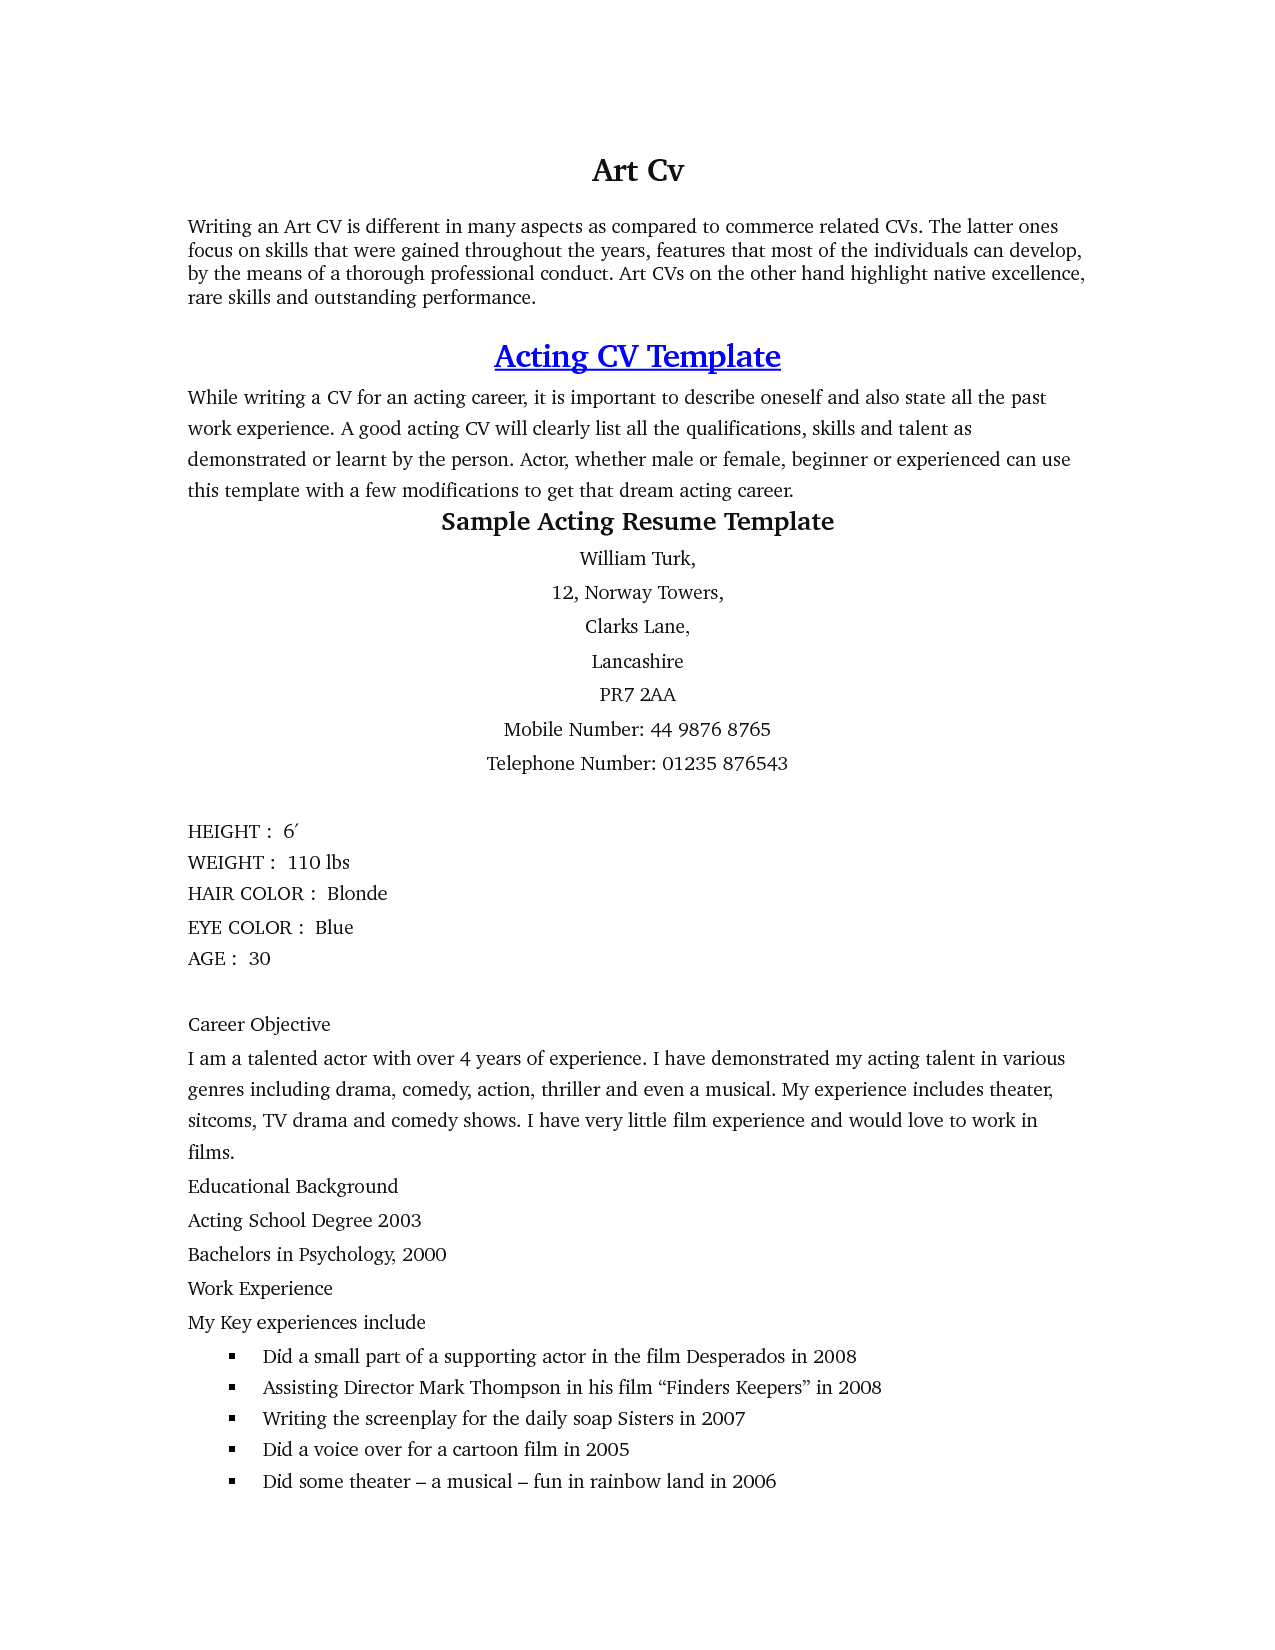 Free Resume Template Or Tips Impressive Acting Resume Sample Beginner  Httpwwwresumecareer